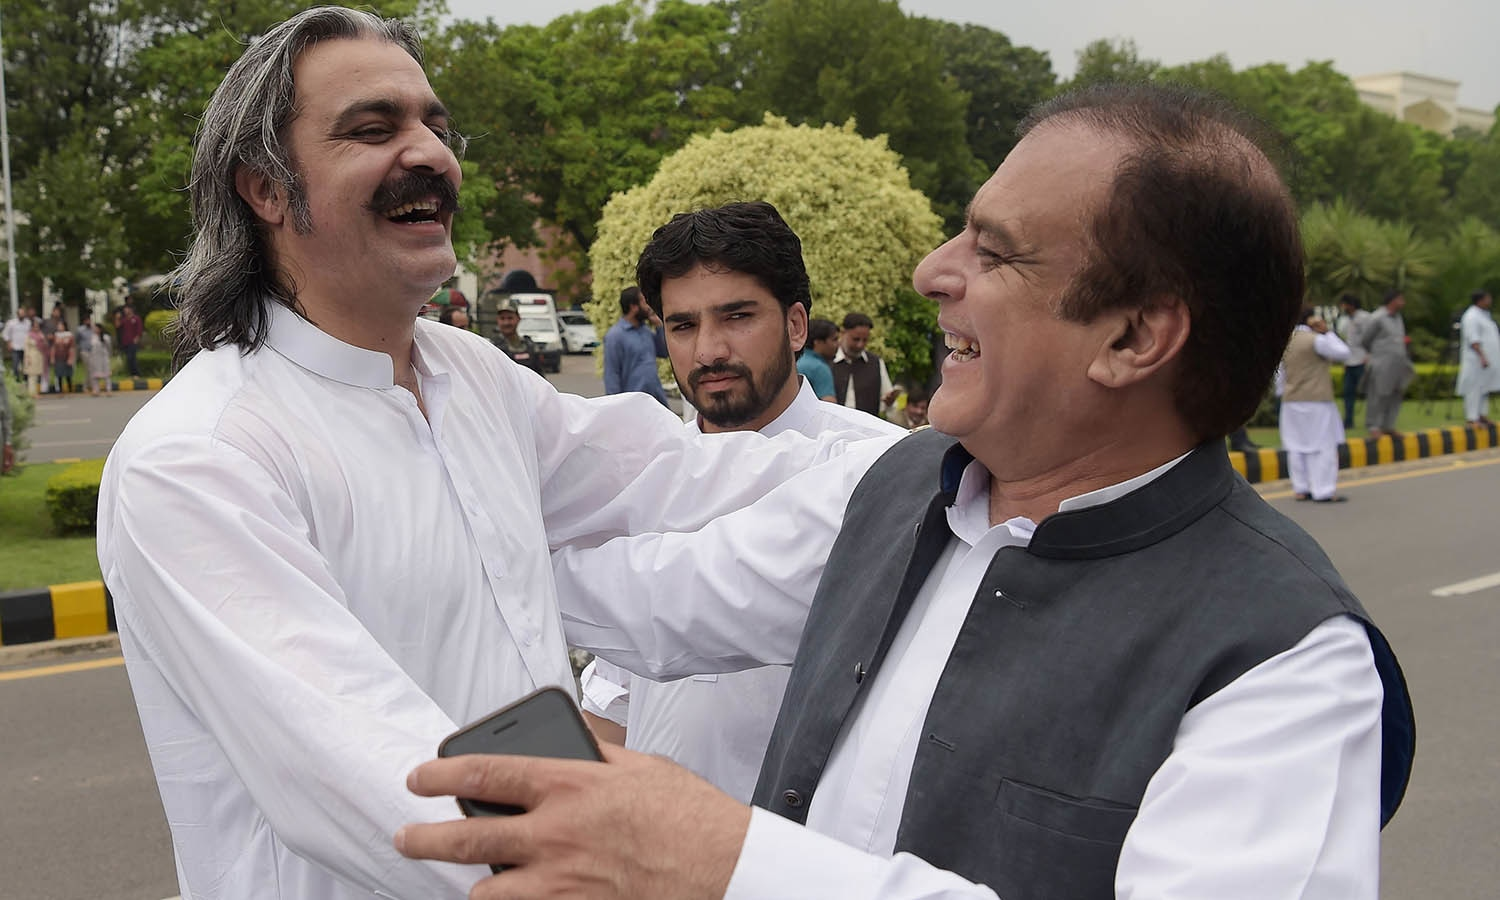 PTI leaders Ali Amin Khan Gandapur and Shibli Faraz celebrate after the SC verdict against Nawaz Sharif. —AFP